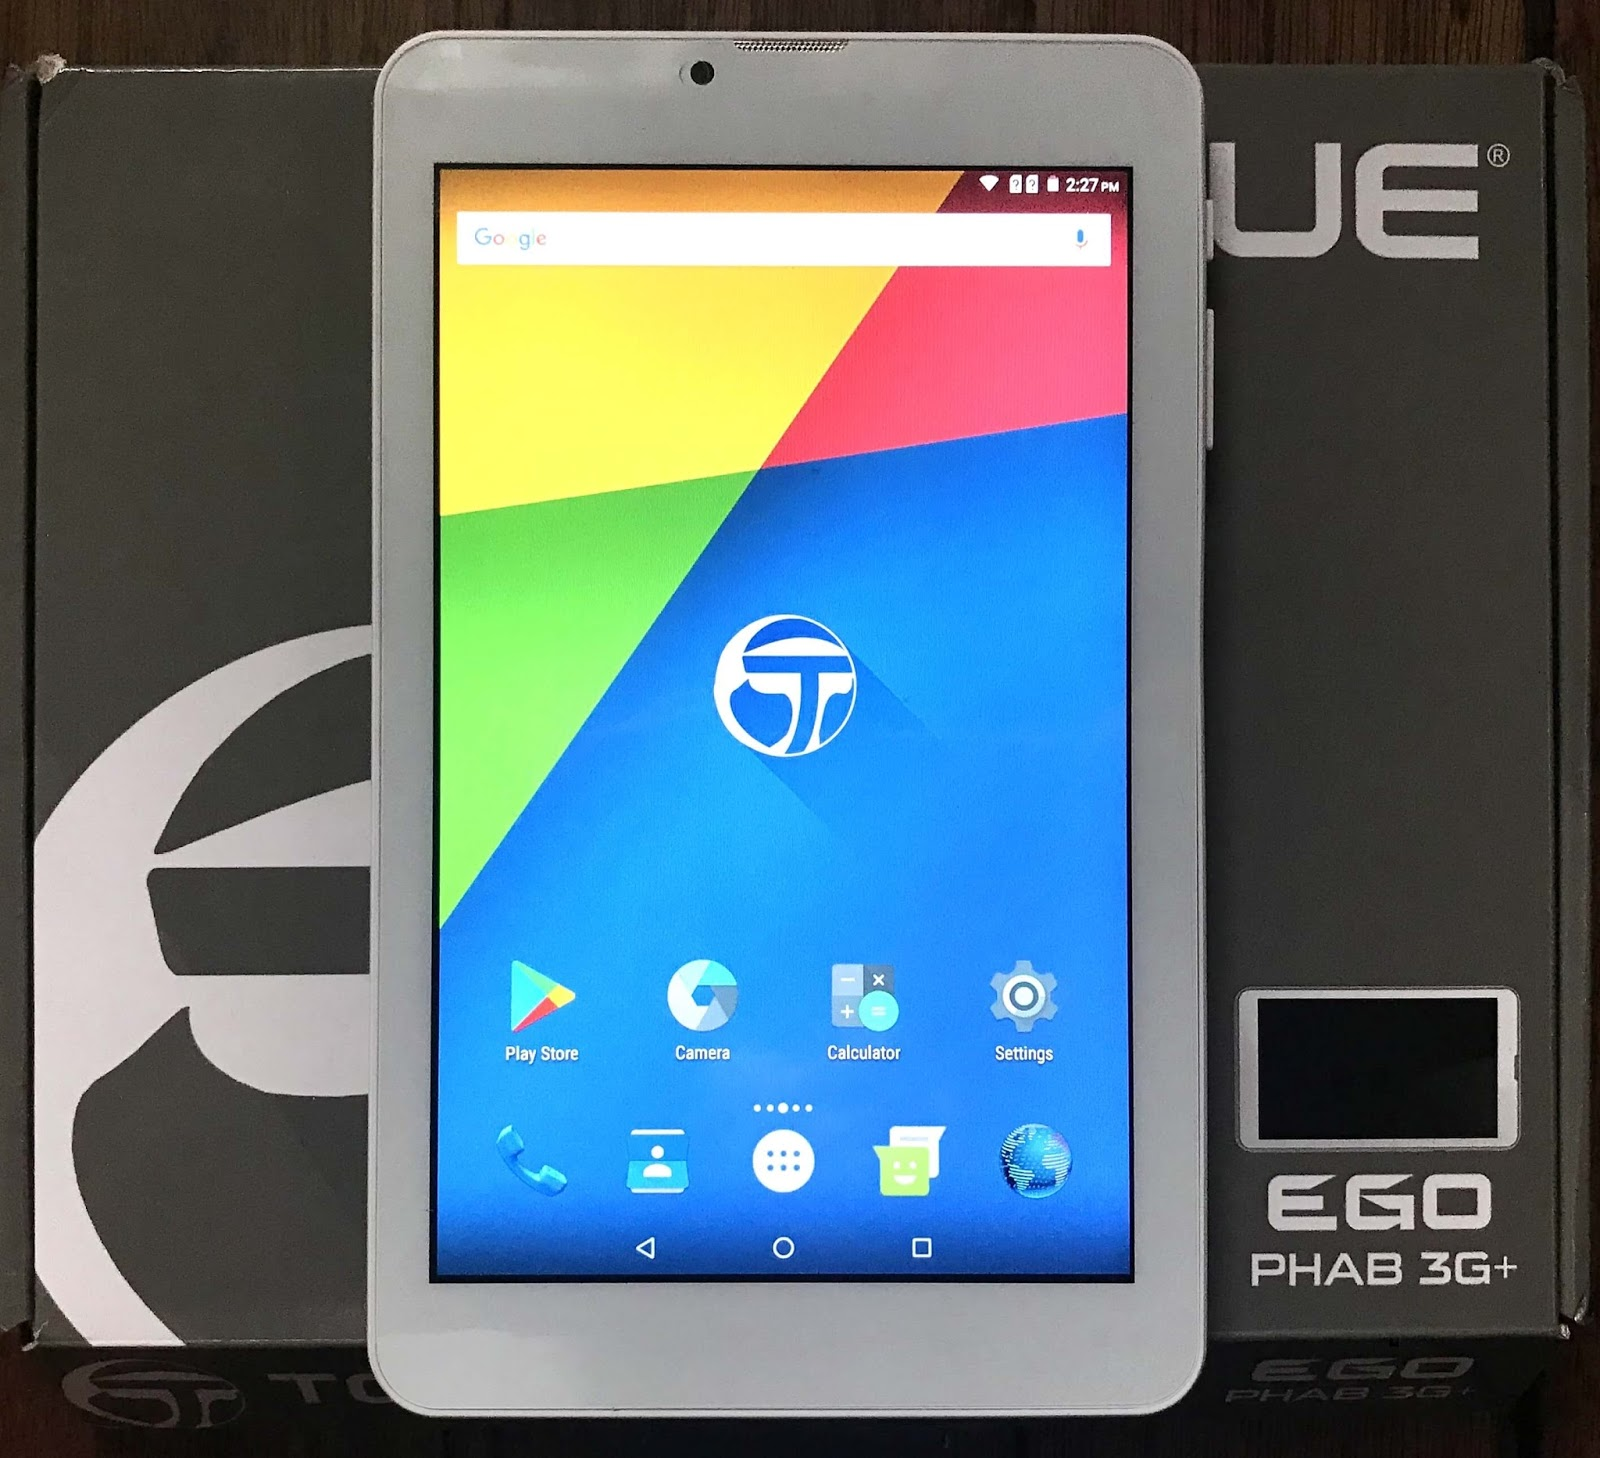 Torque EGO Phab 3G+ Review; Wise Choice for a Budget User